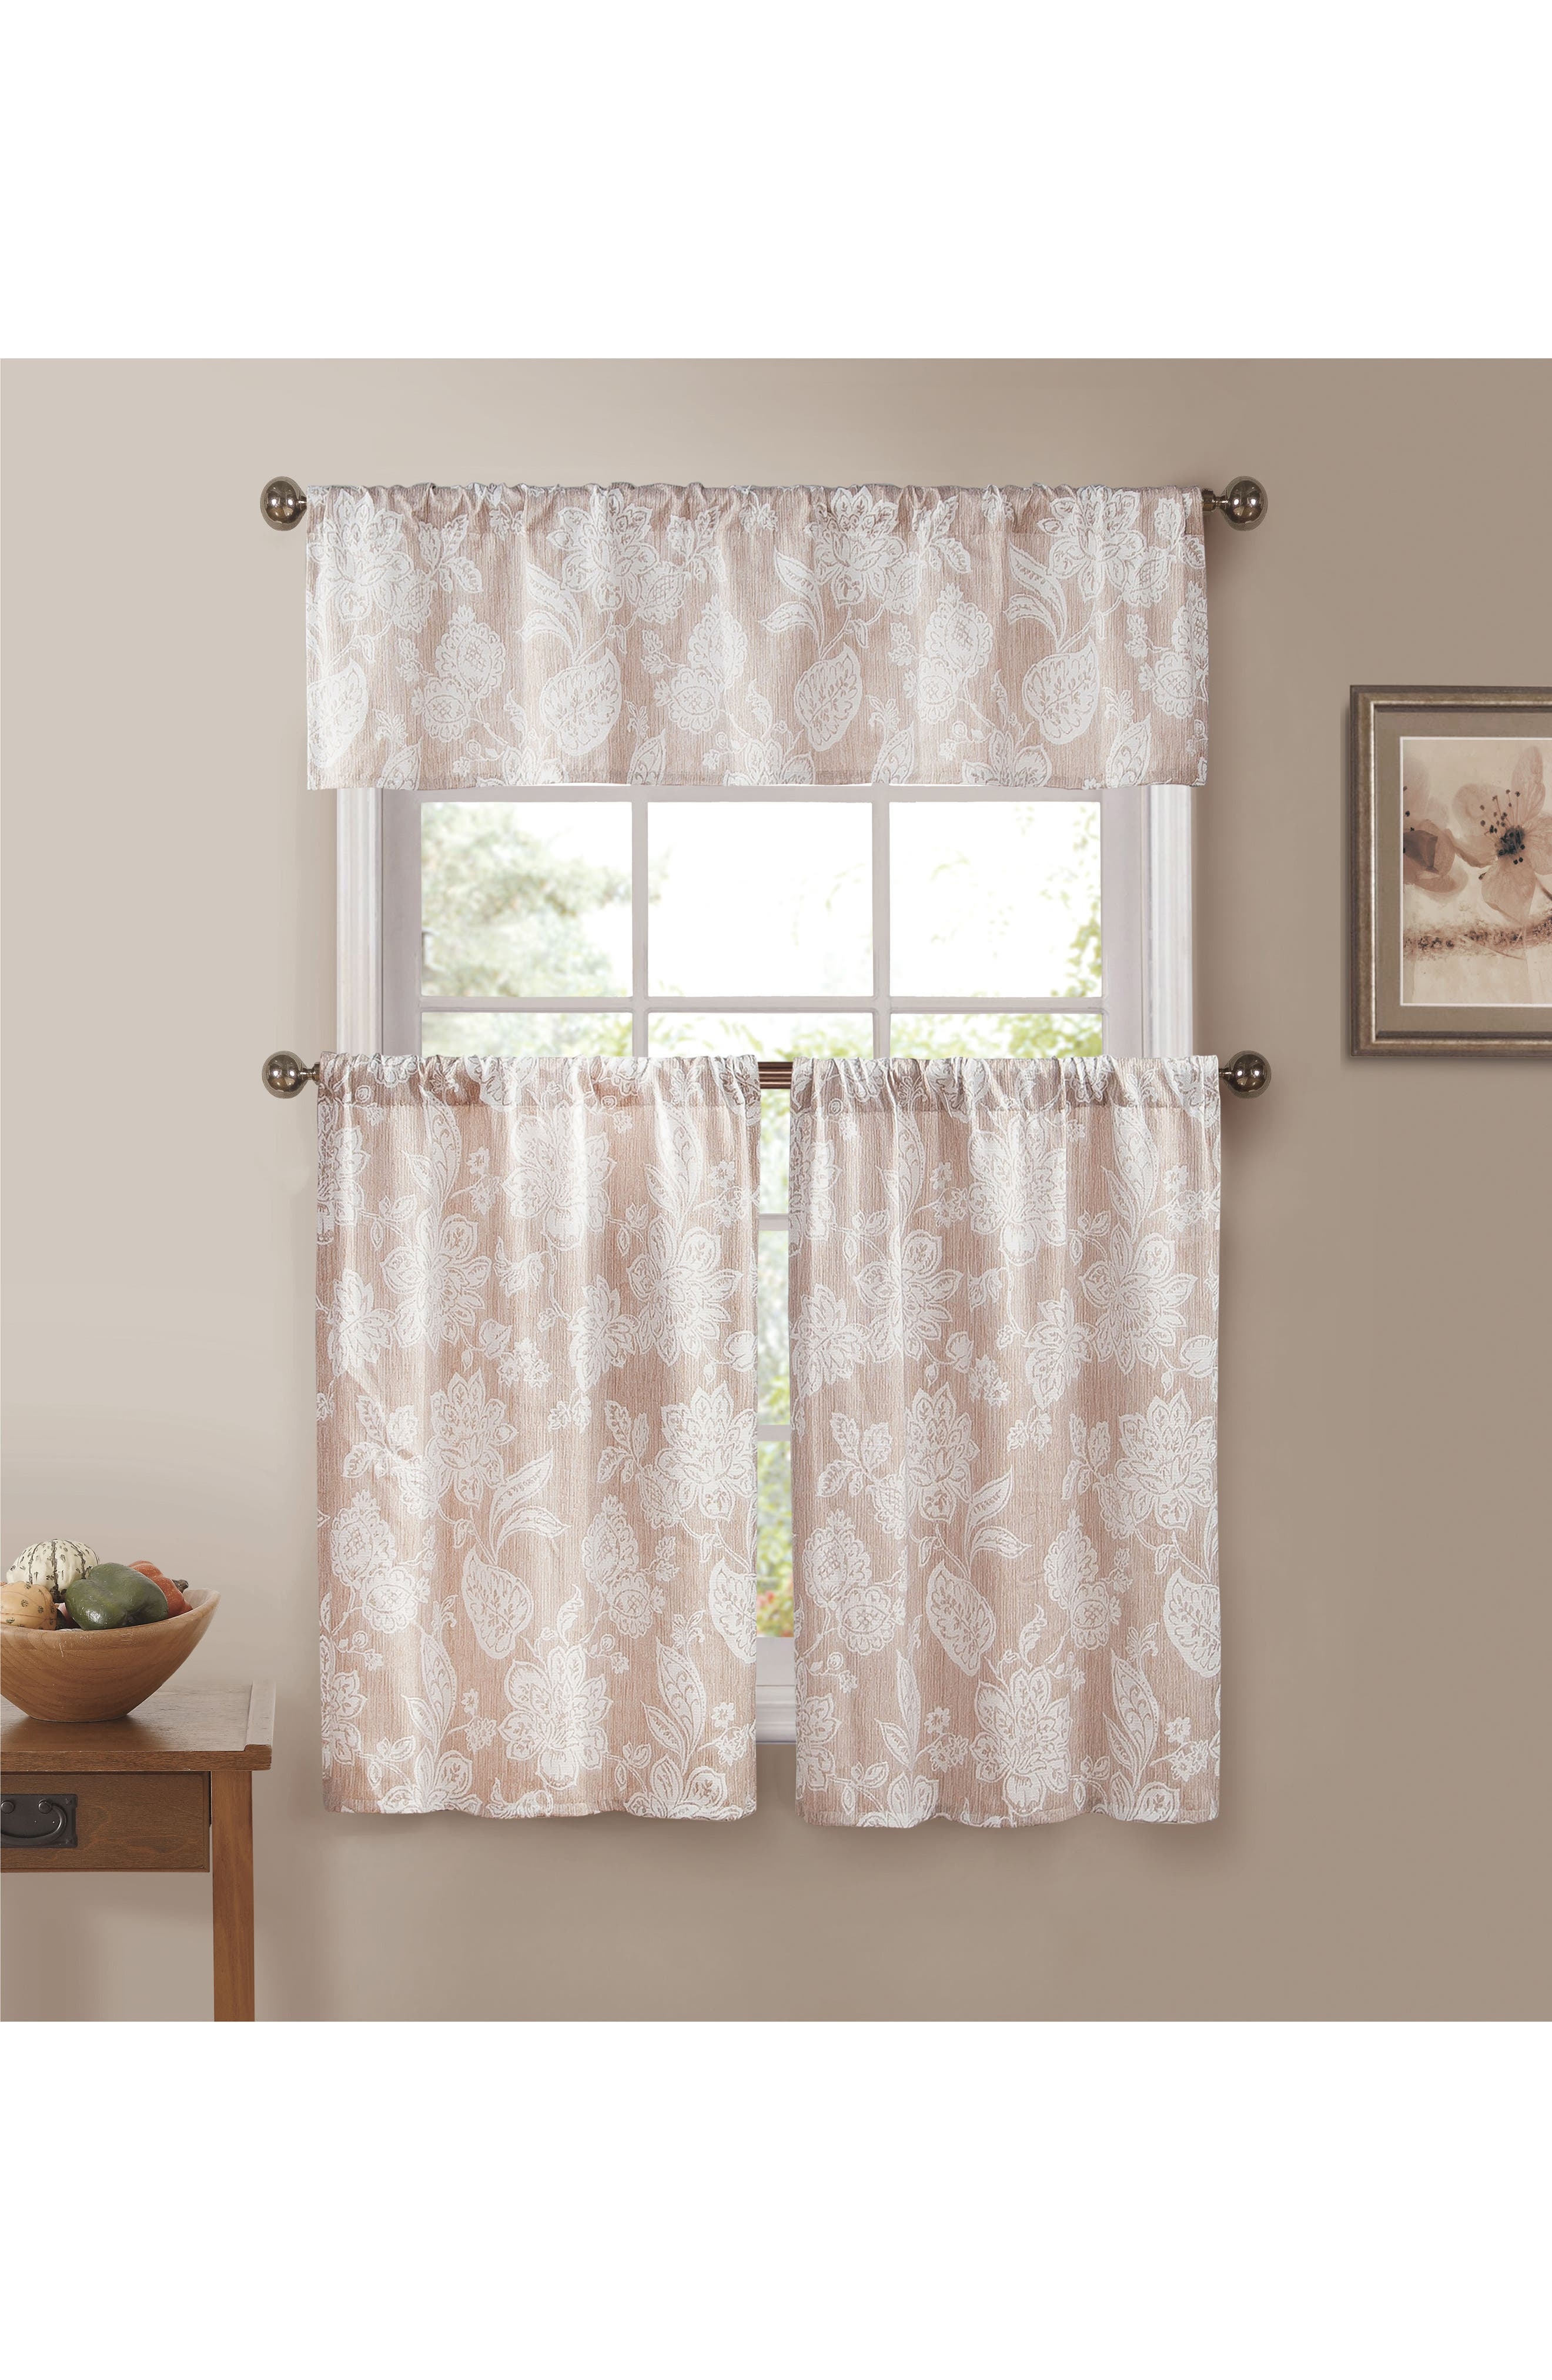 Ewva Set of 3 Tiered Jacquard Small Pole Top Window Panels,                         Main,                         color, Taupe